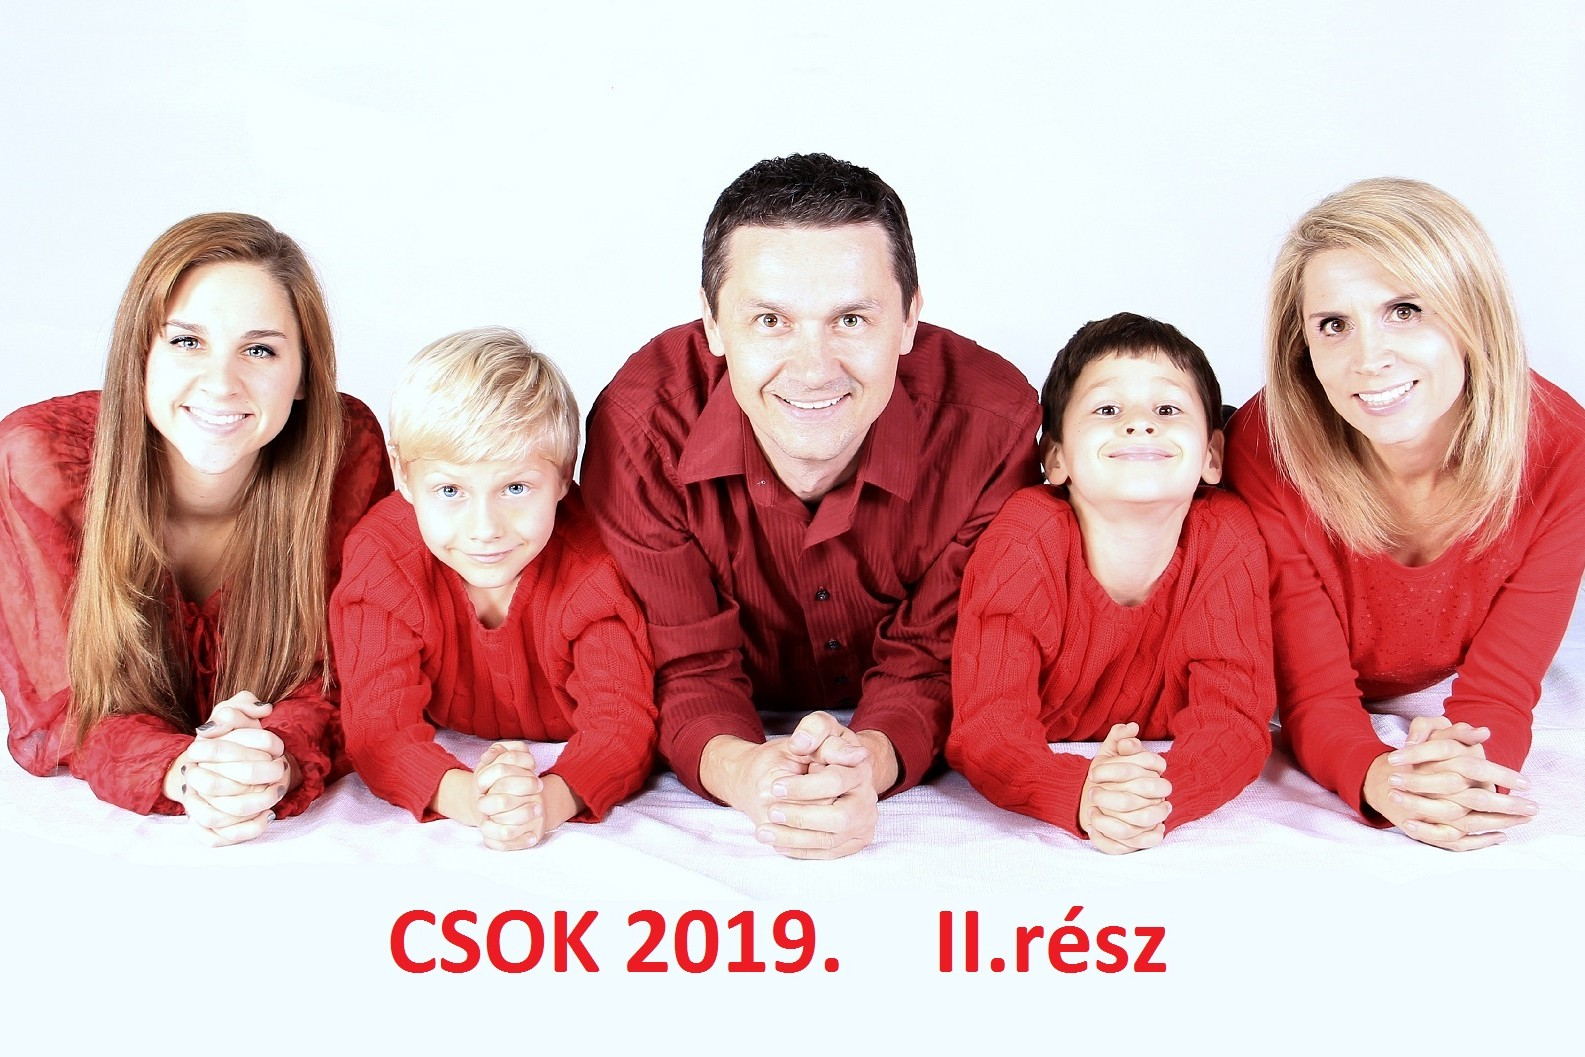 csok 2019, lakáscentrum.hu